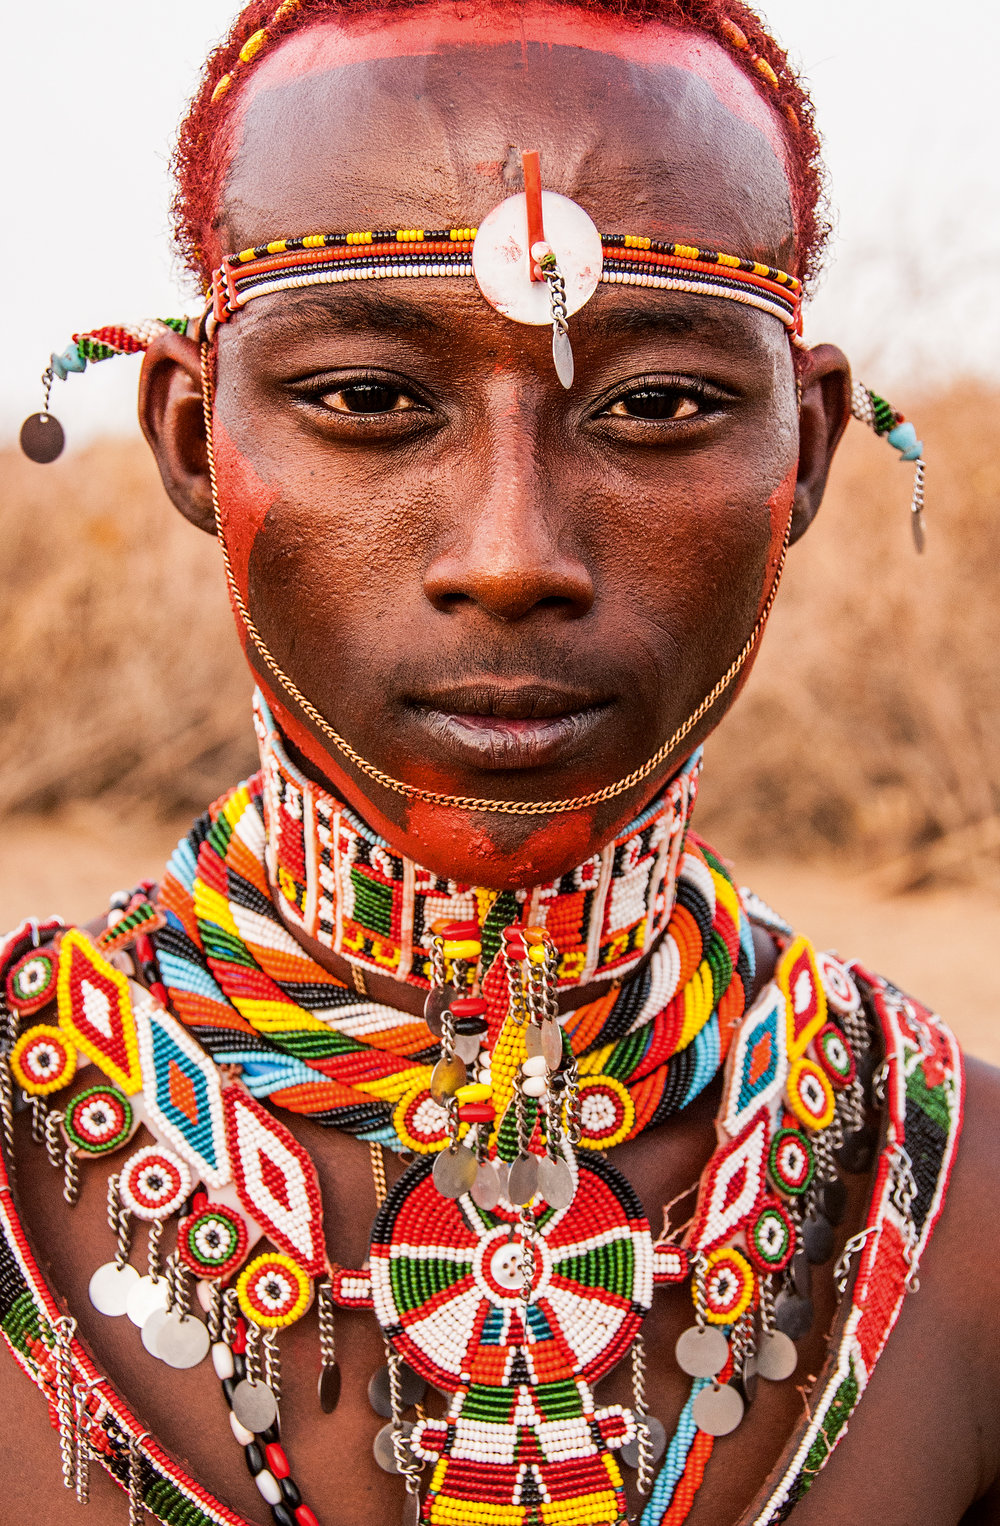 Portrait of a young warrior at the close of the Herr Heroon ceremony. © African Twilight: The Vanishing Cultures and Ceremonies of the African Continent by Carol Beckwith and Angela Fisher, Rizzoli, 2018.